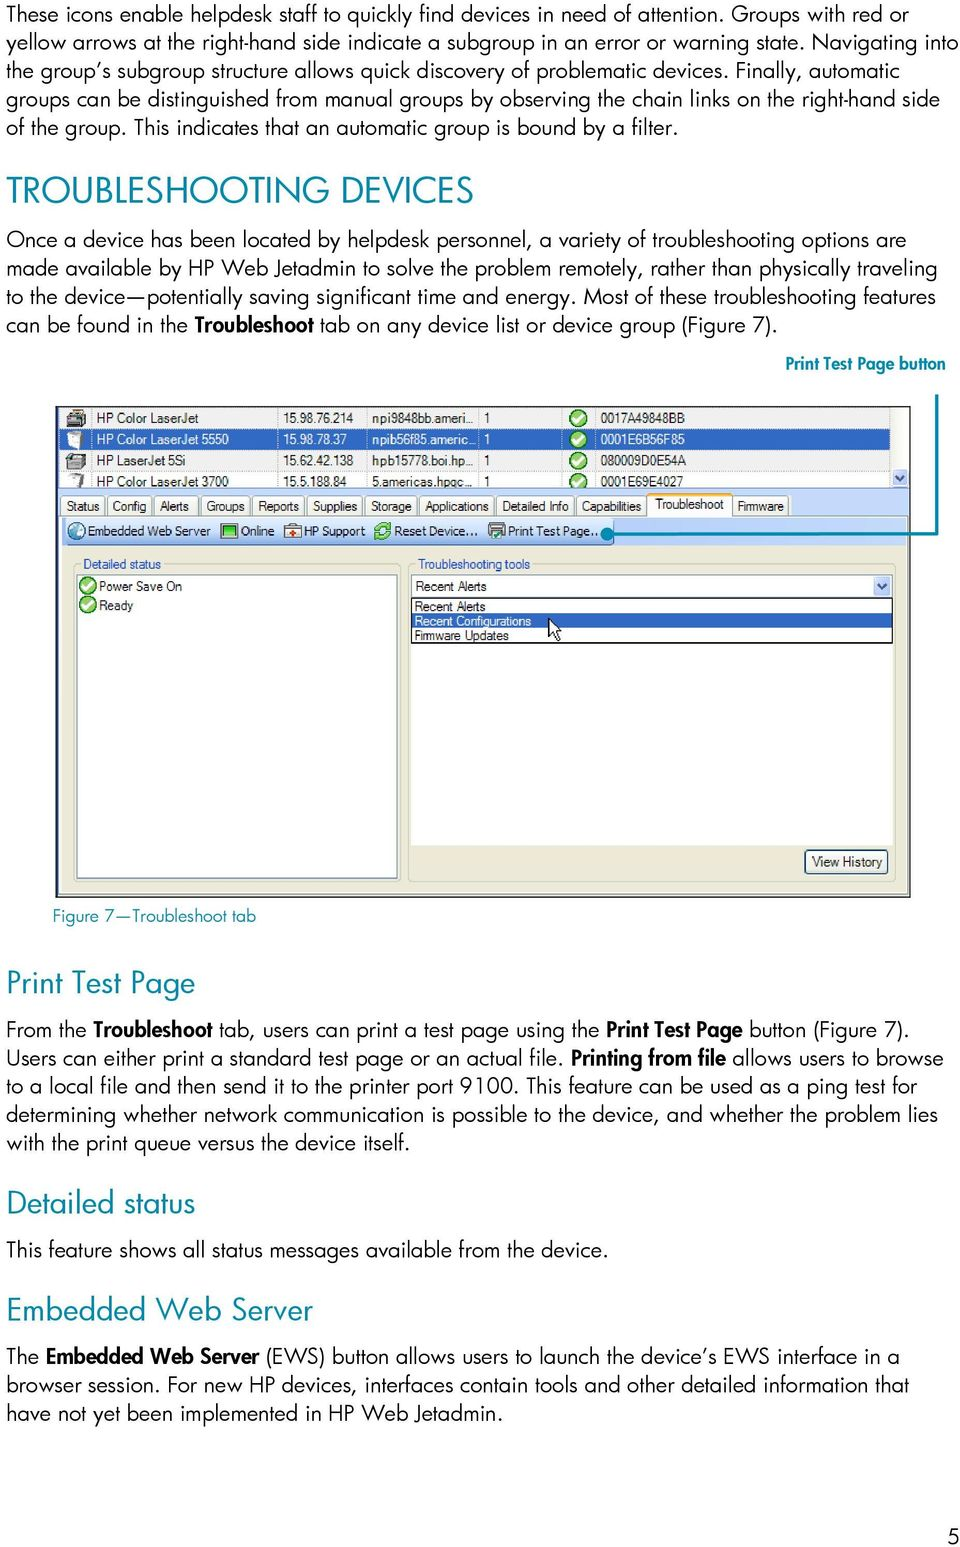 RUNNING A HELPDESK CONTENTS  using HP Web Jetadmin - PDF